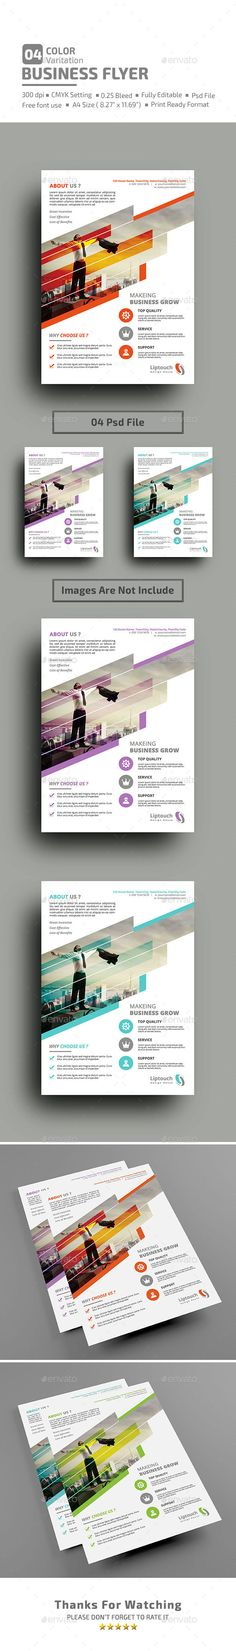 "Buy Business Flyer by liptouch on GraphicRiver. Detail A4 (8.27×11.69) psd file CMYK Setting 300 dpi High Resolution Print Size 8.27"" x 11.69"" (0.25..."